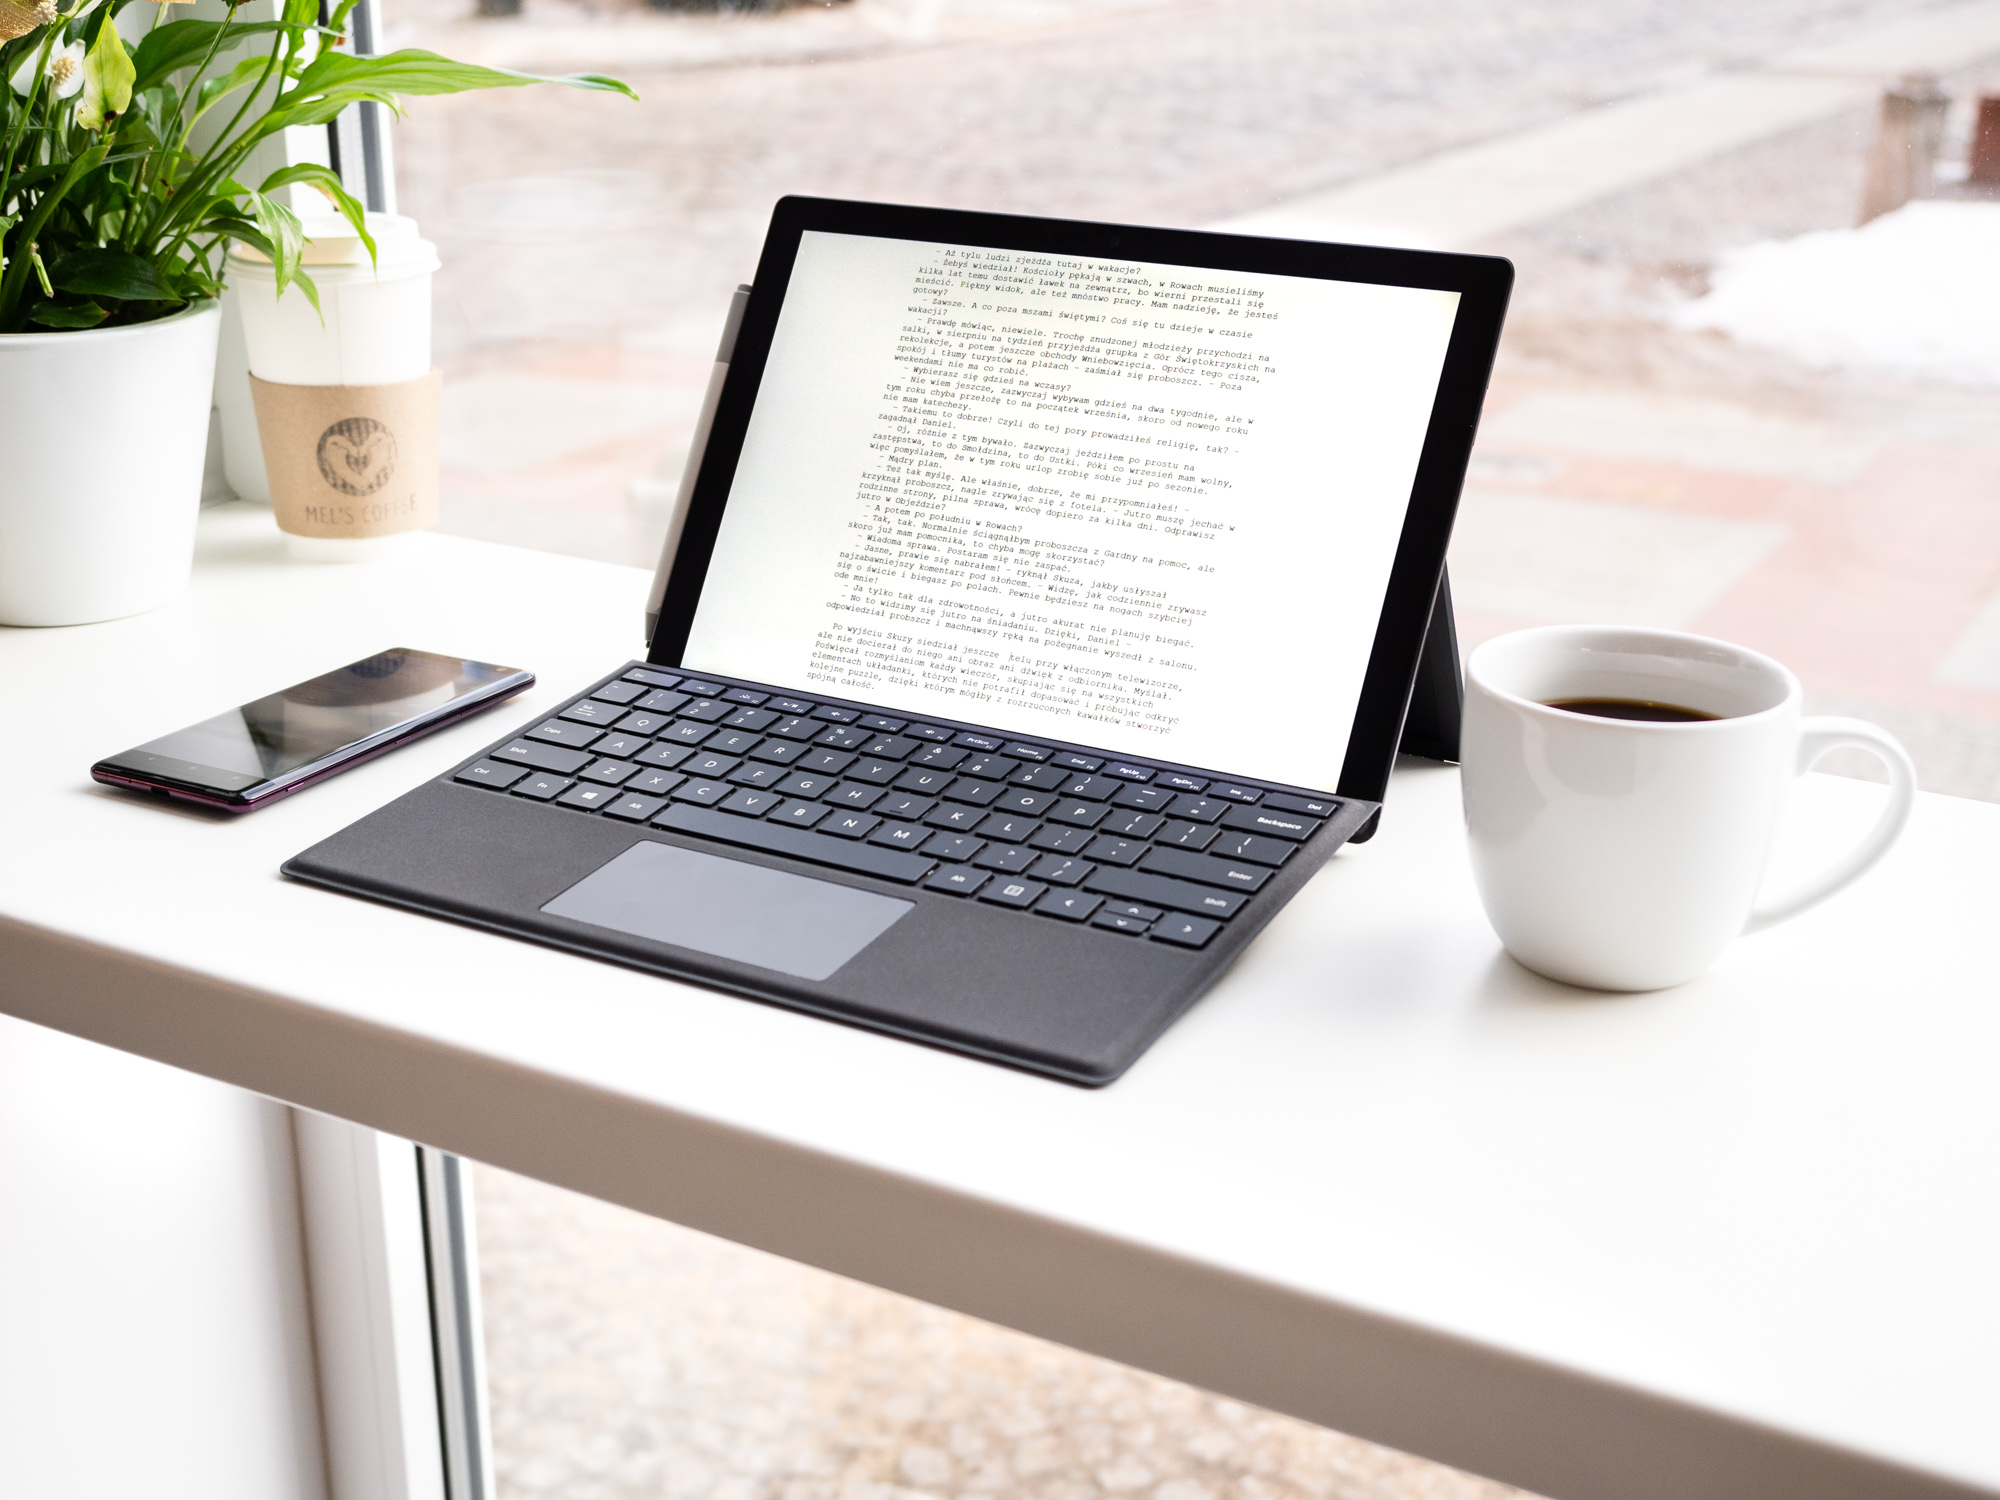 Word has a chance to become the best writing program without the distractions